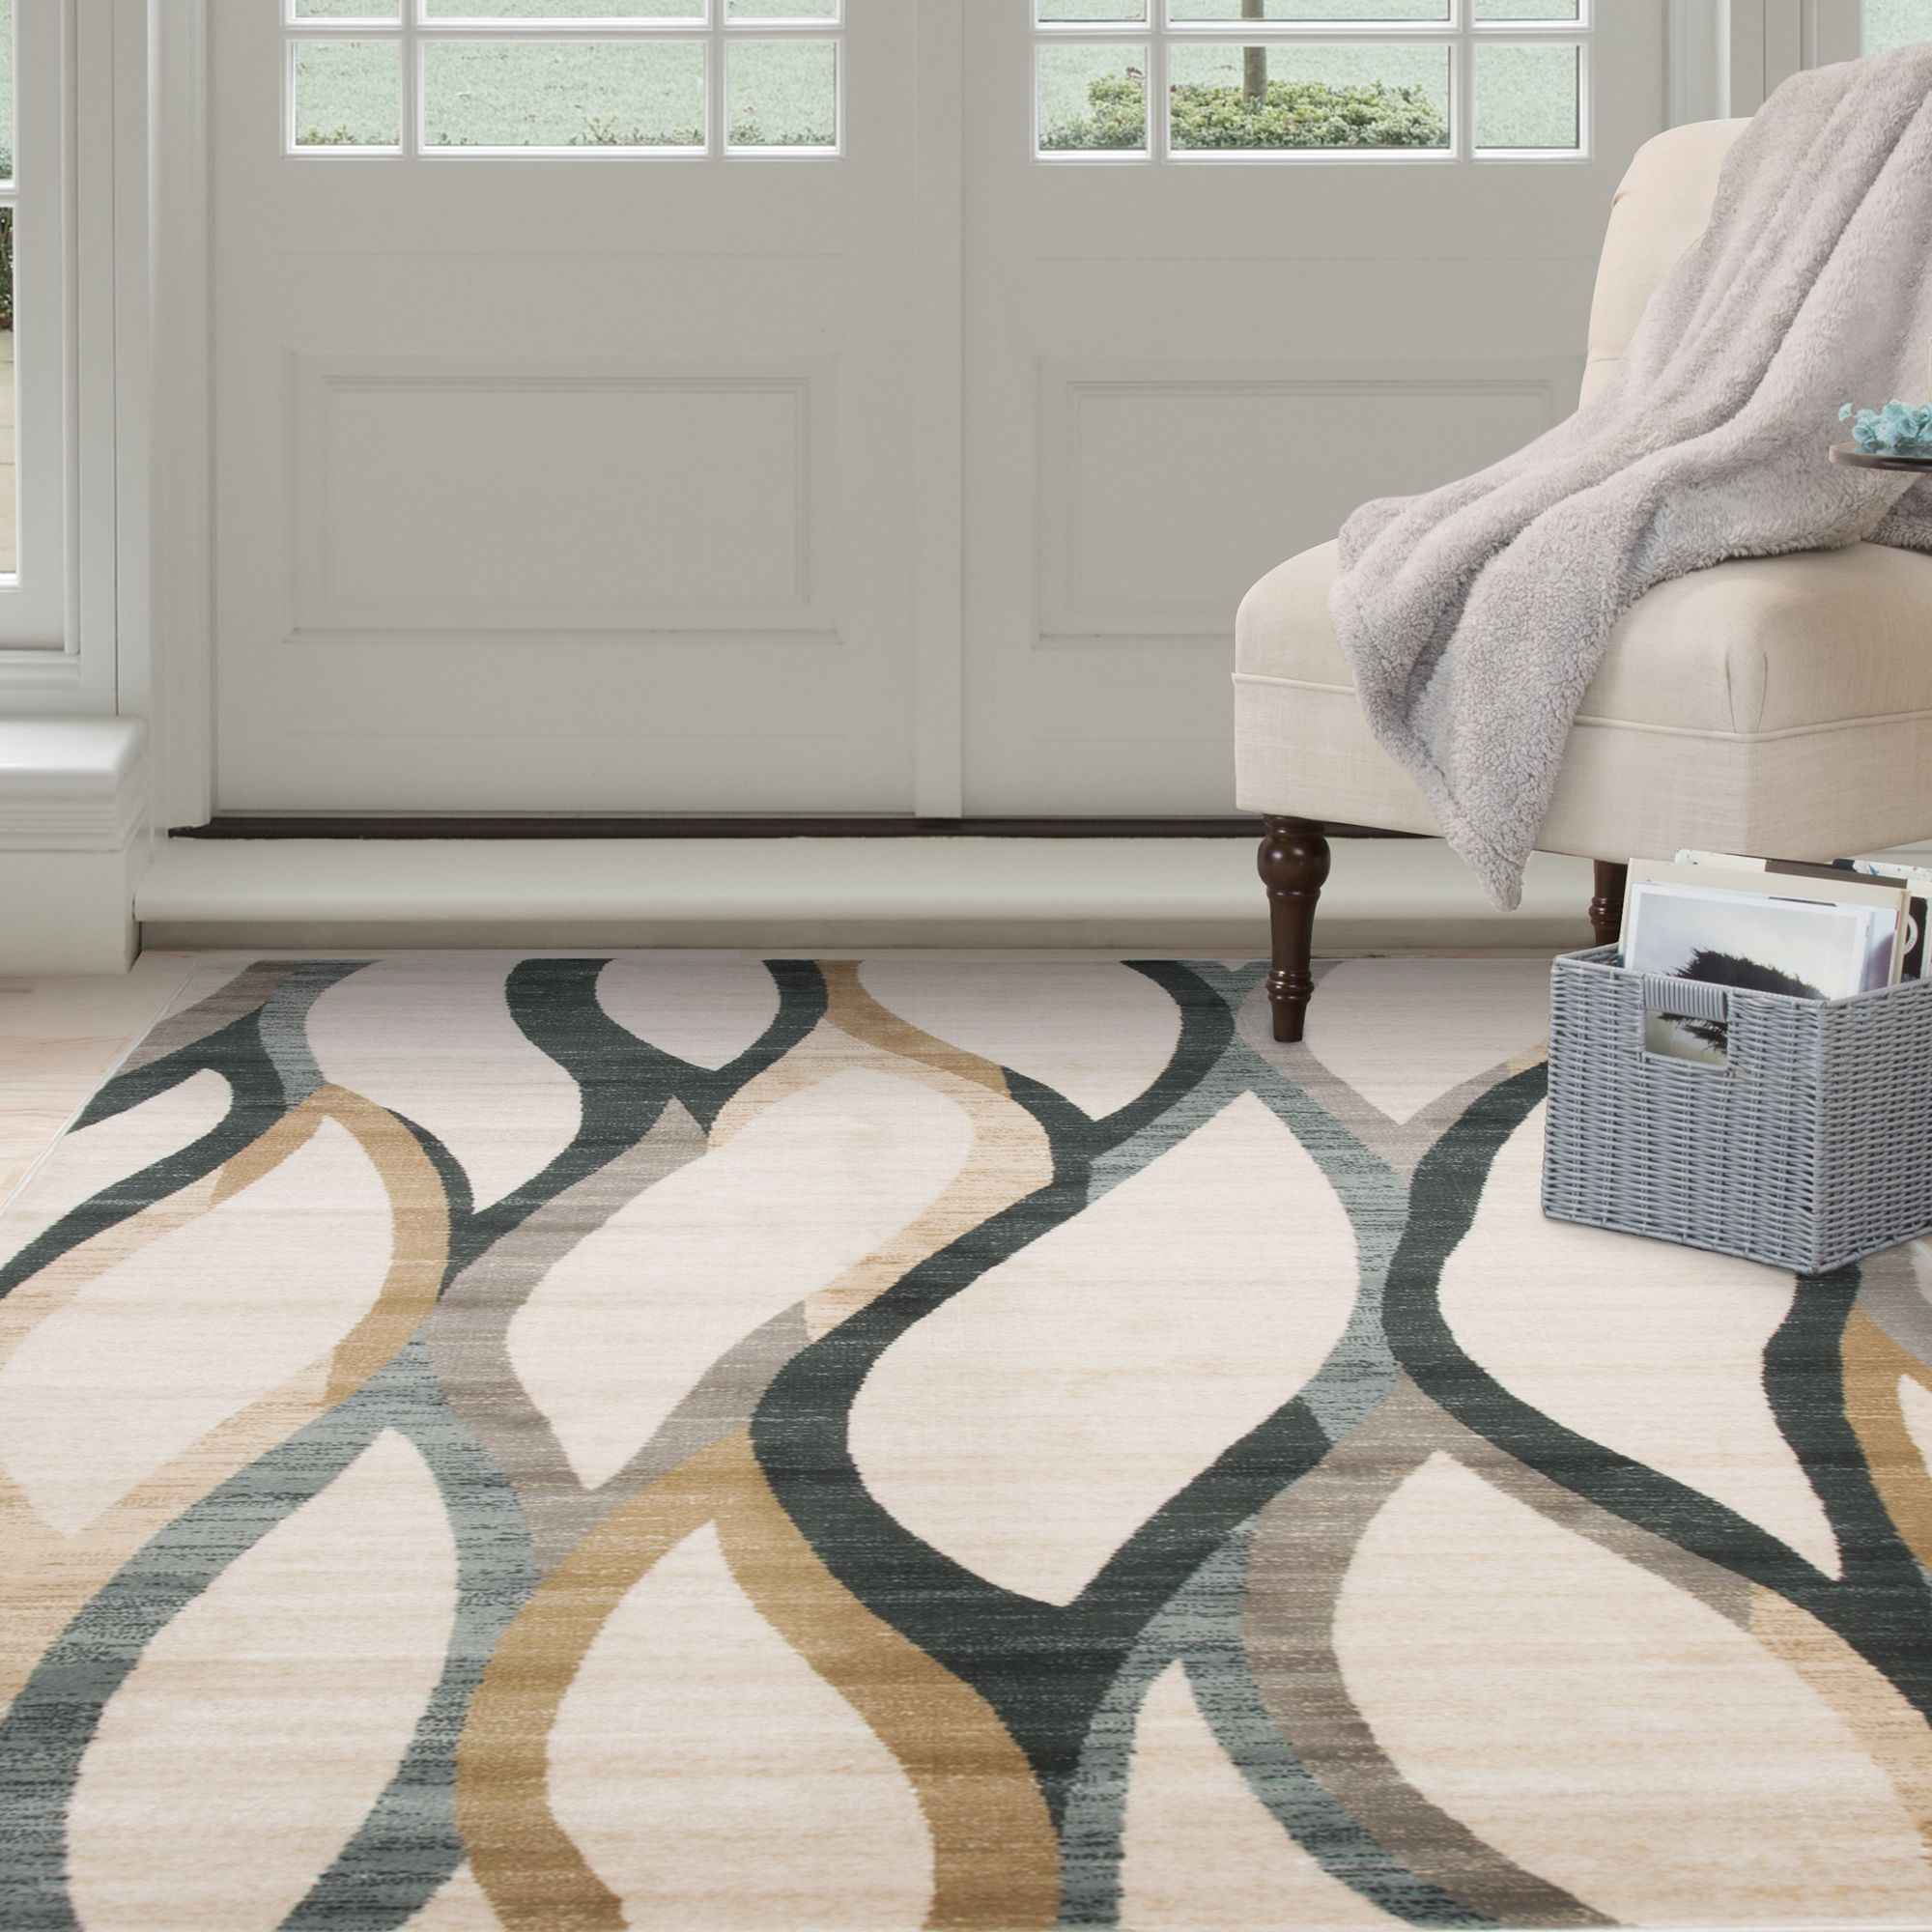 rug for living room size%0A Windsor Home Opus Contemporary Curves Area Rug